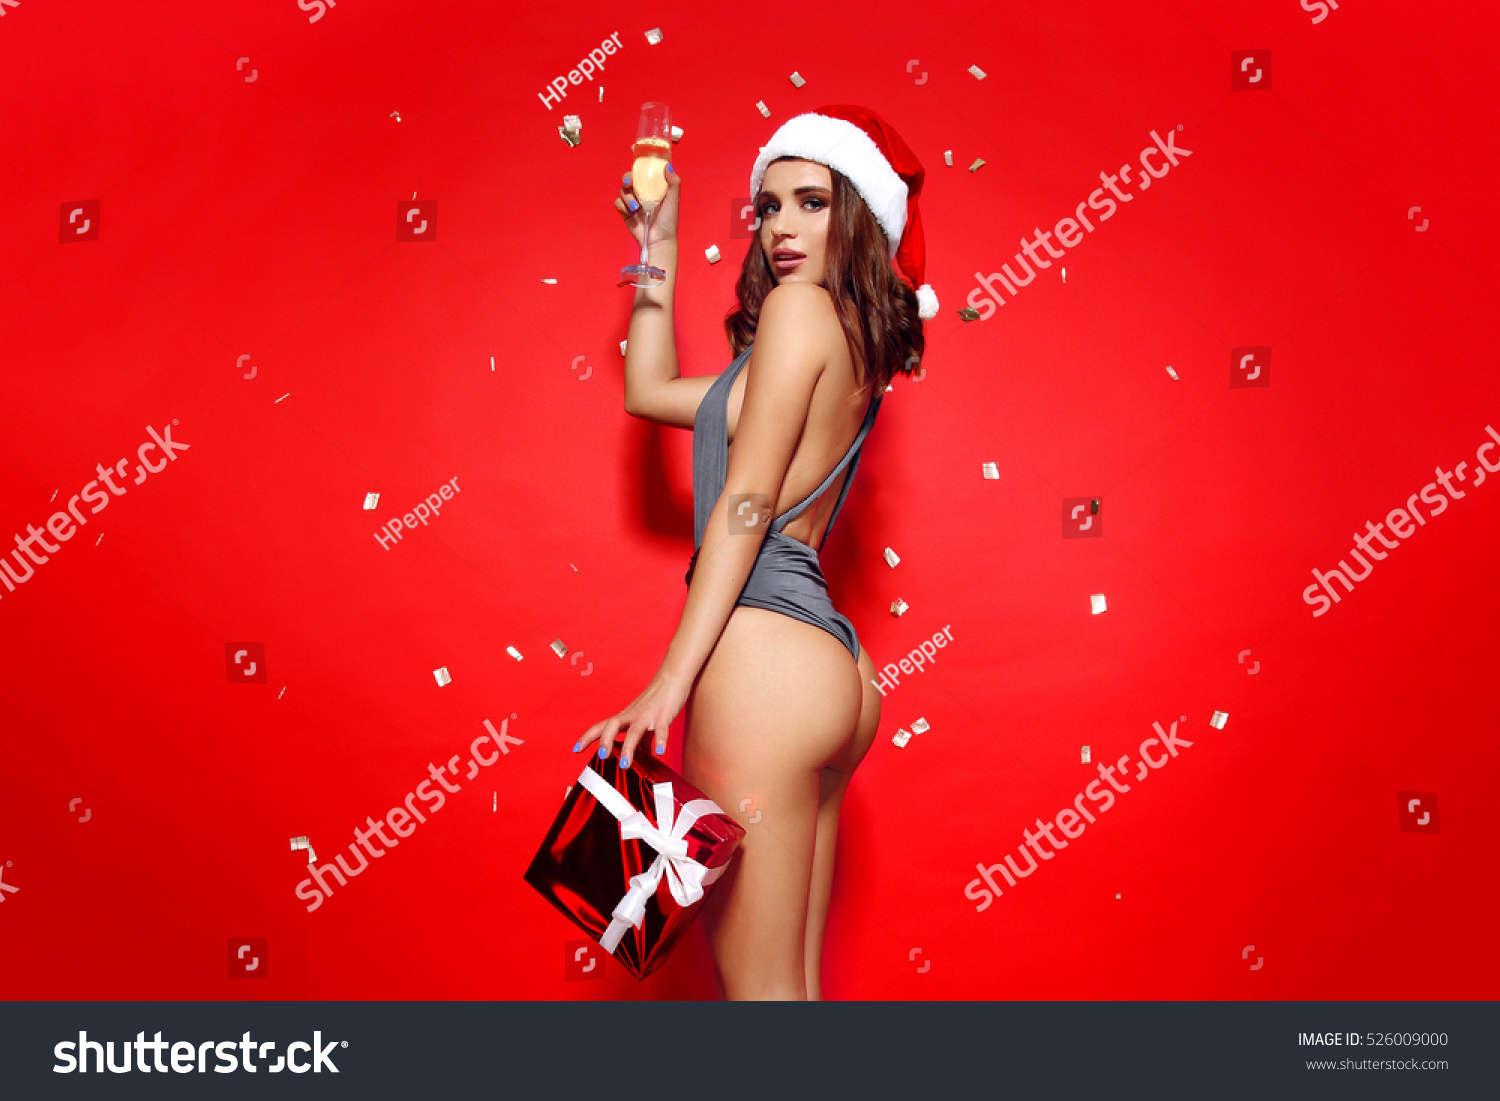 99041fc5d1 beautiful young girl model stands on red background in sexy bathing suit  and a Christmas Santa